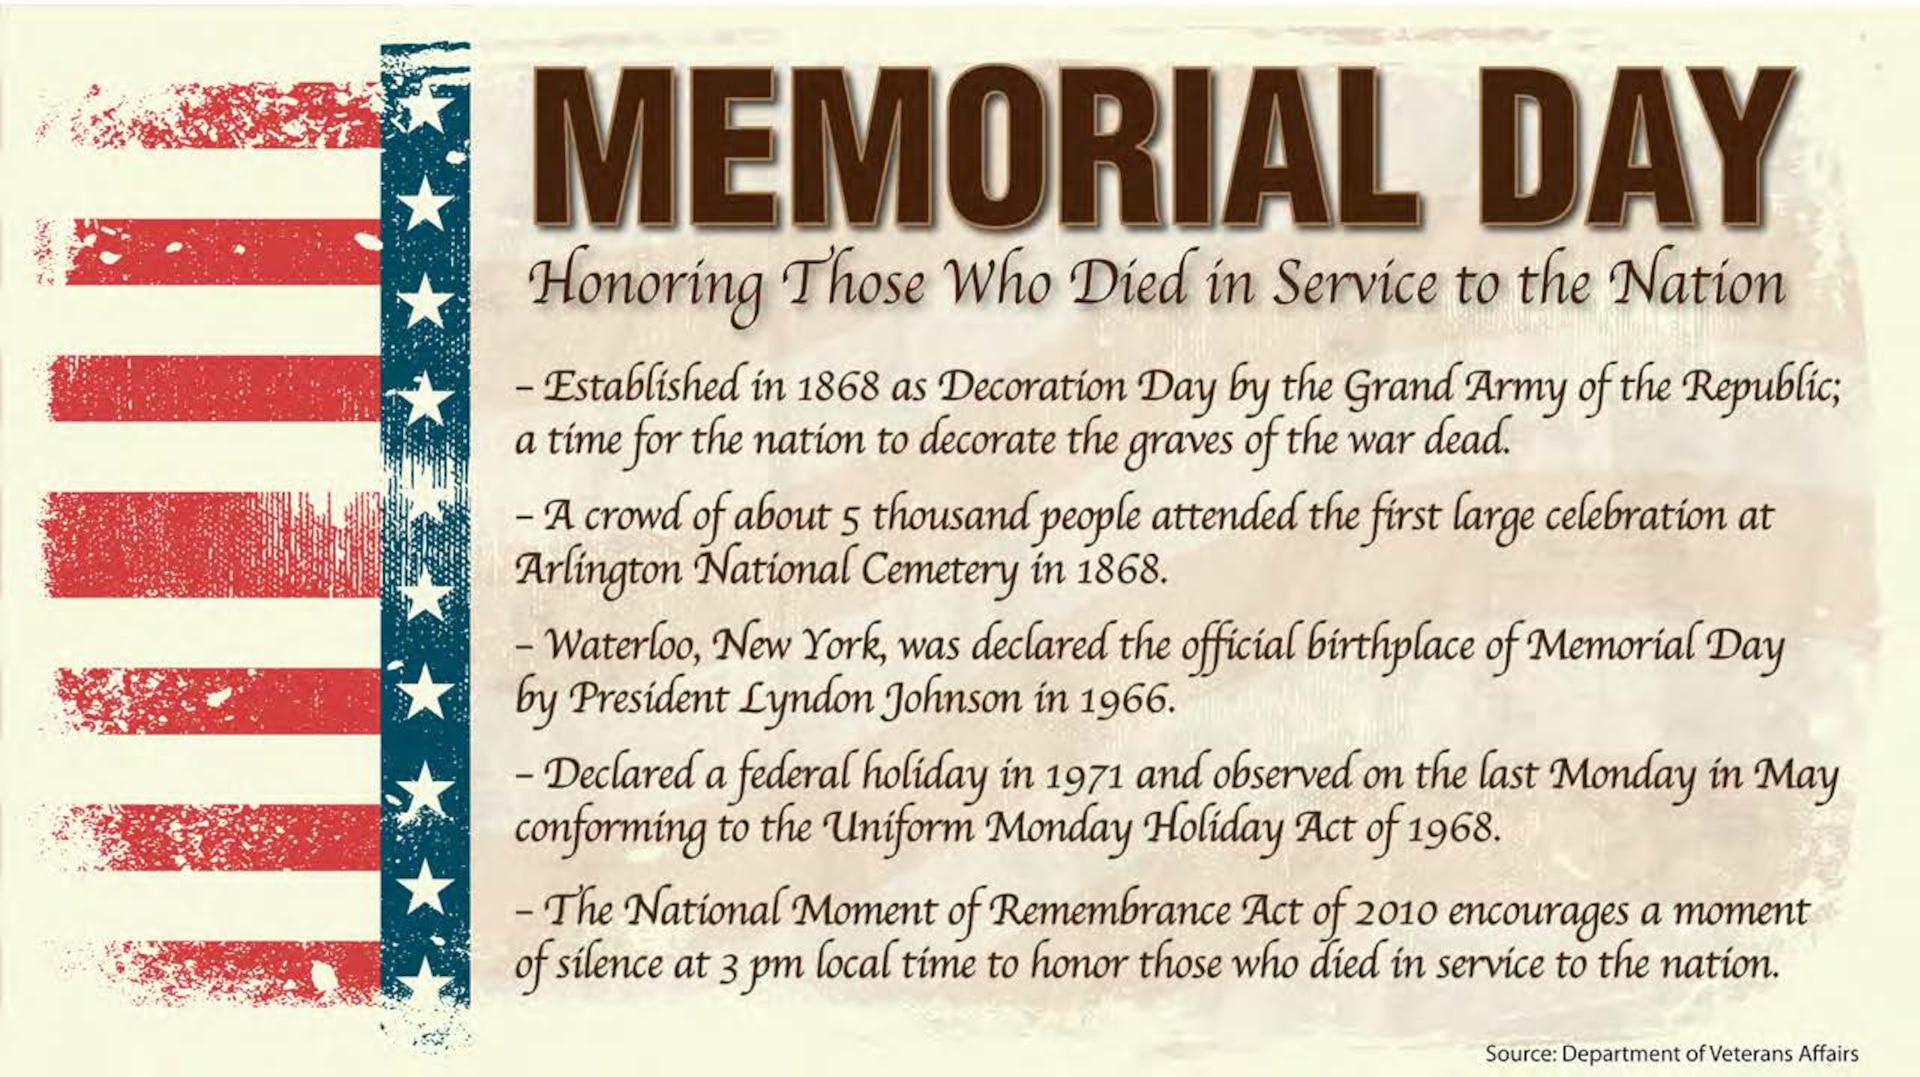 Across the nation, people will visit cemeteries, attend memorial tributes and participate in parades as a way of honoring and remembering those service members' sacrifices.